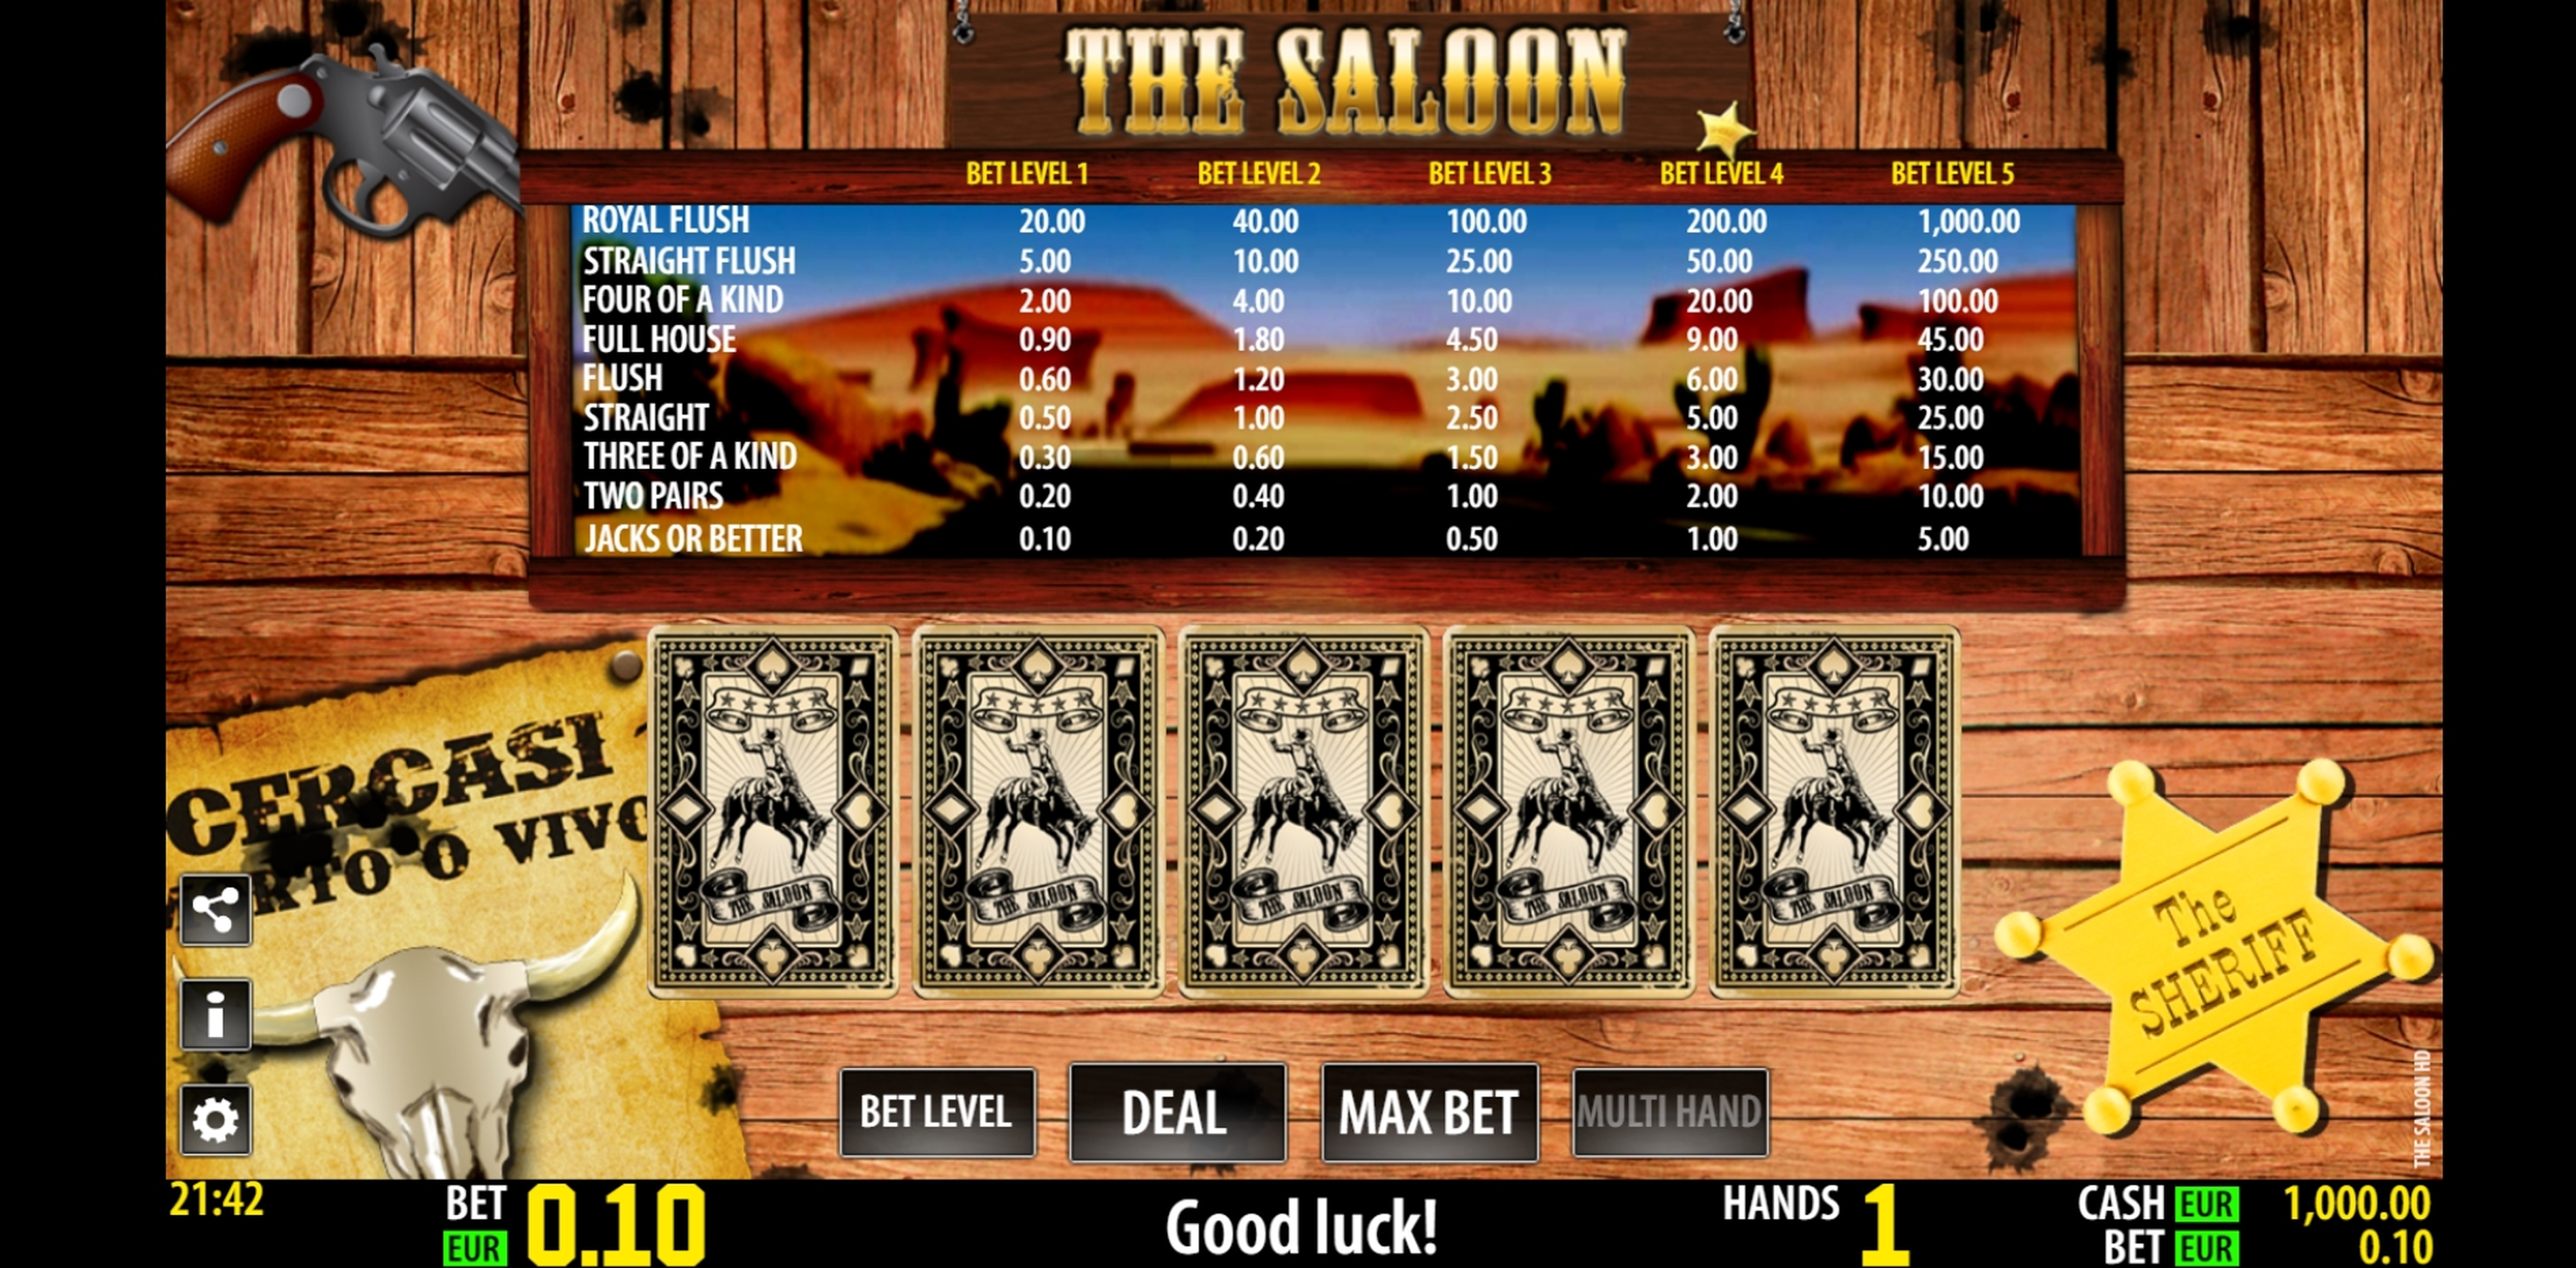 Reels in The Saloon HD Slot Game by World Match